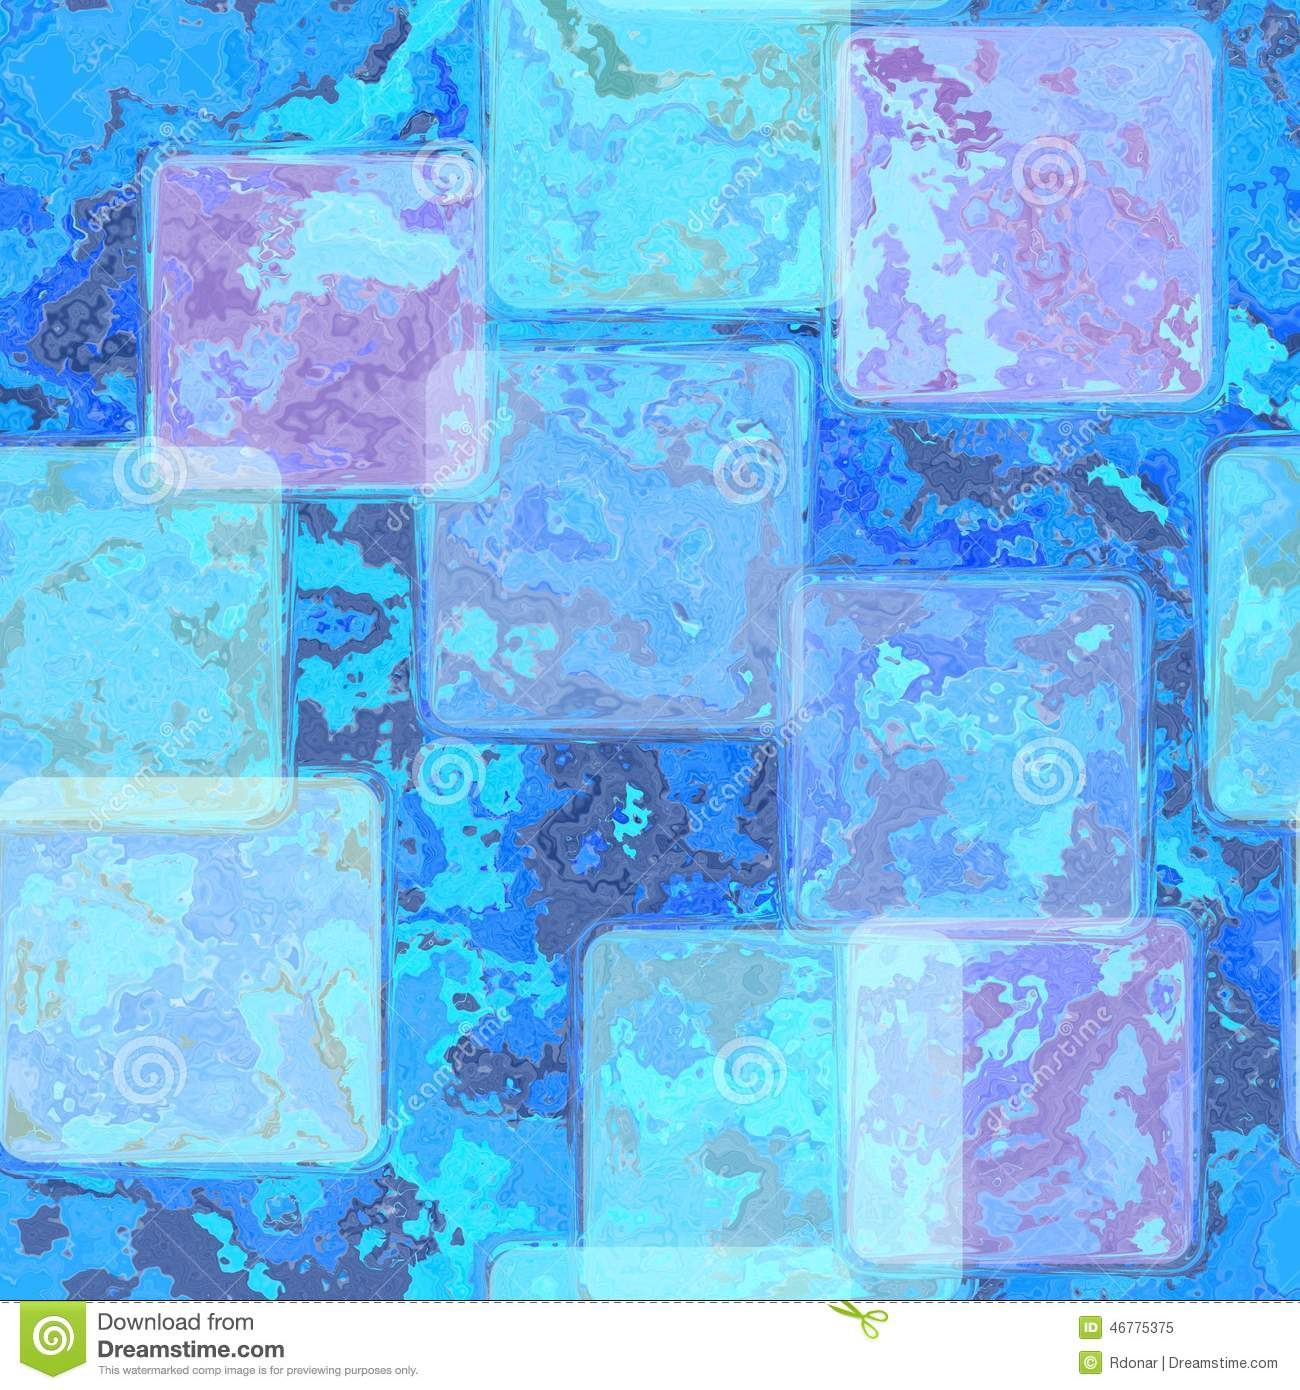 Bright Blue Stained Tile Background With Parchment Frame: bright blue tile